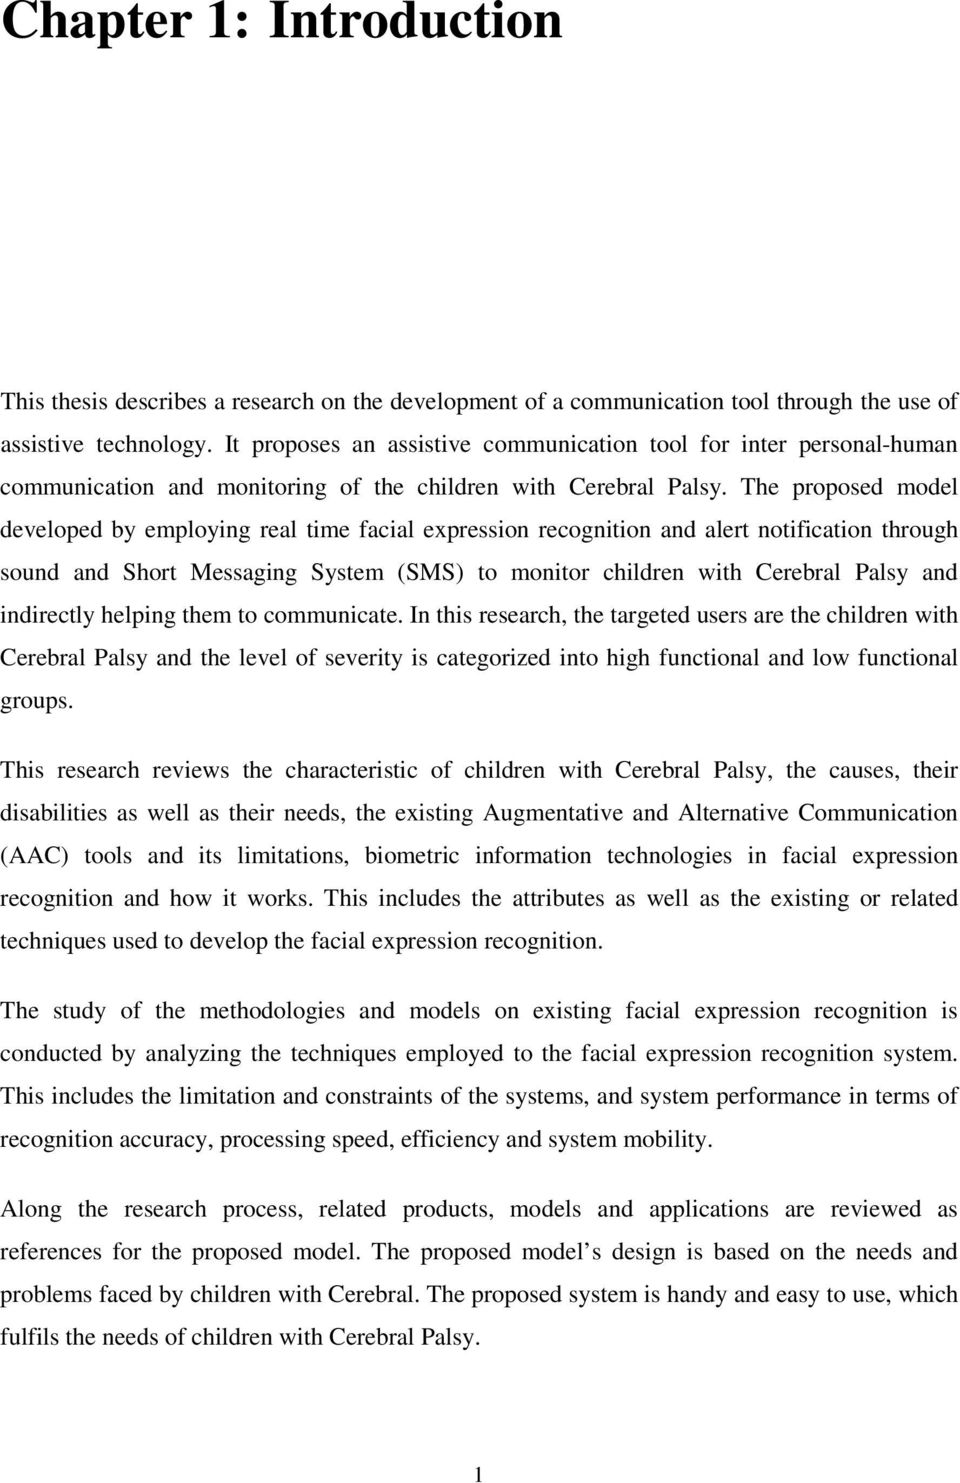 The proposed model developed by employing real time facial expression recognition and alert notification through sound and Short Messaging System (SMS) to monitor children with Cerebral Palsy and